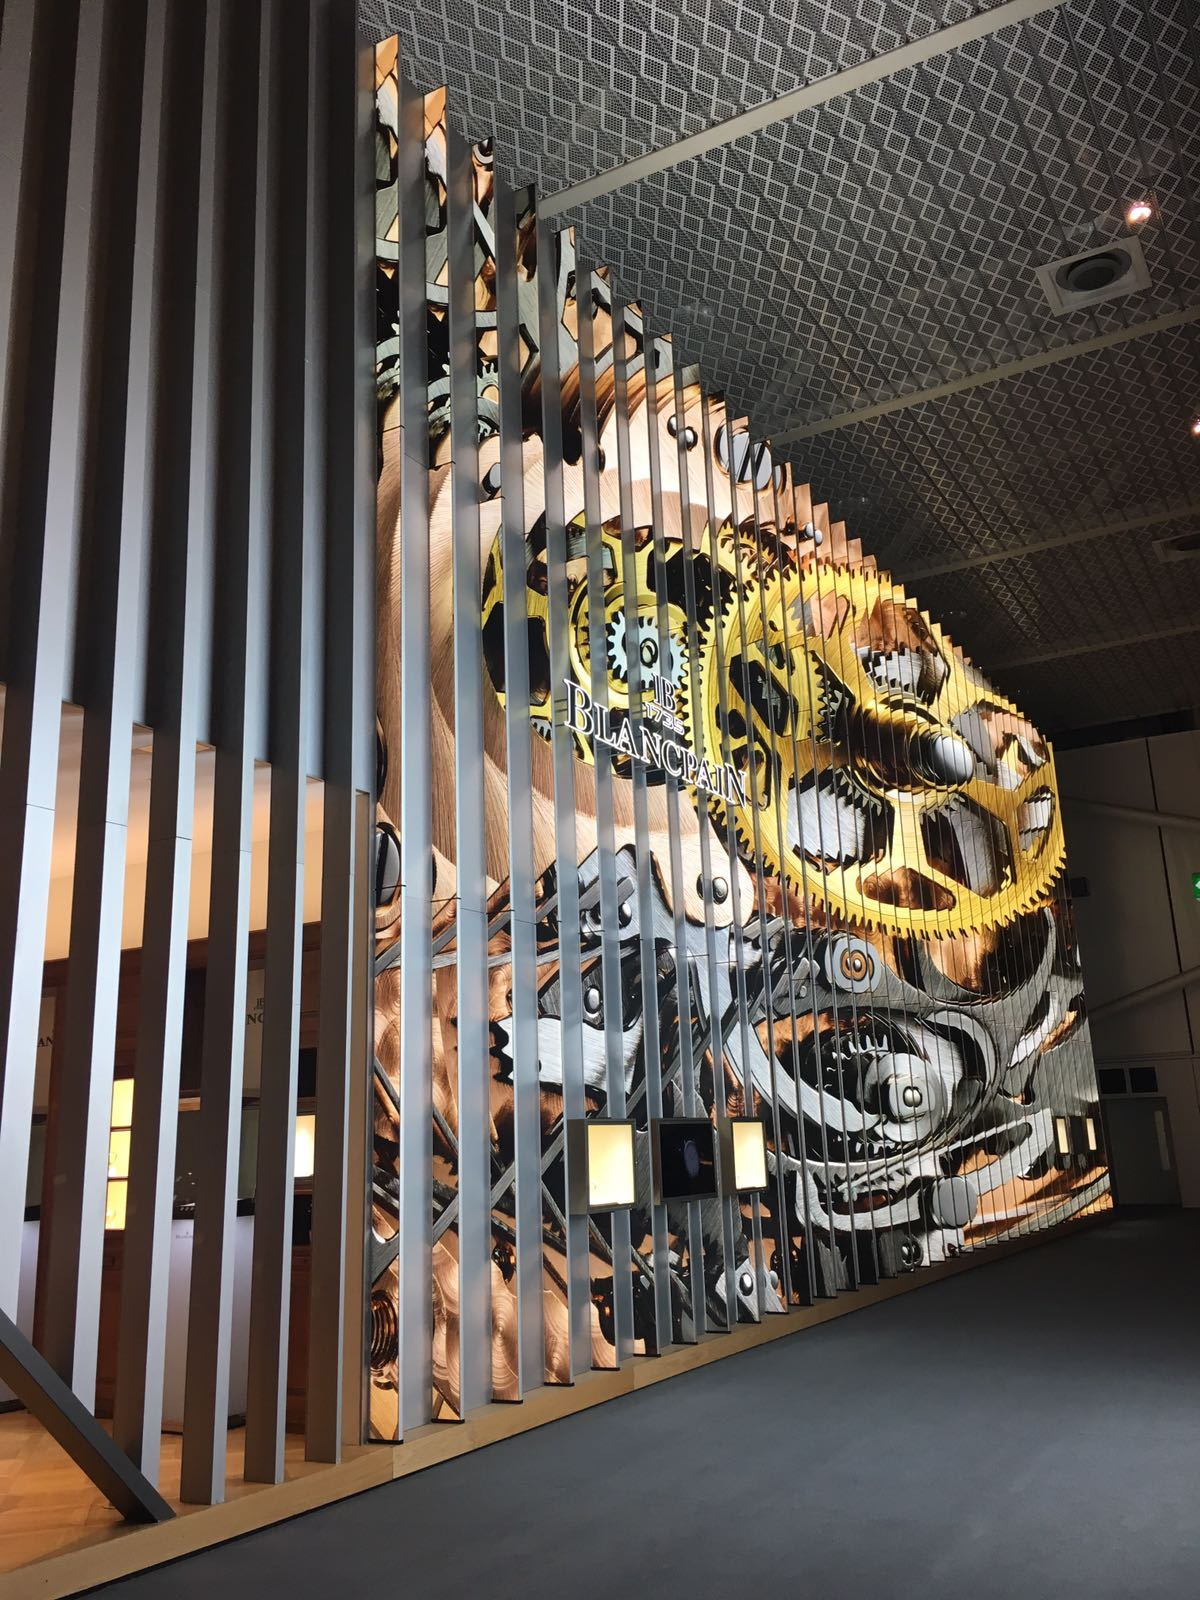 baselworld 2017 Best of Baselworld 2017 in Pictures Best of Baselworld 2017 in Pictures 13